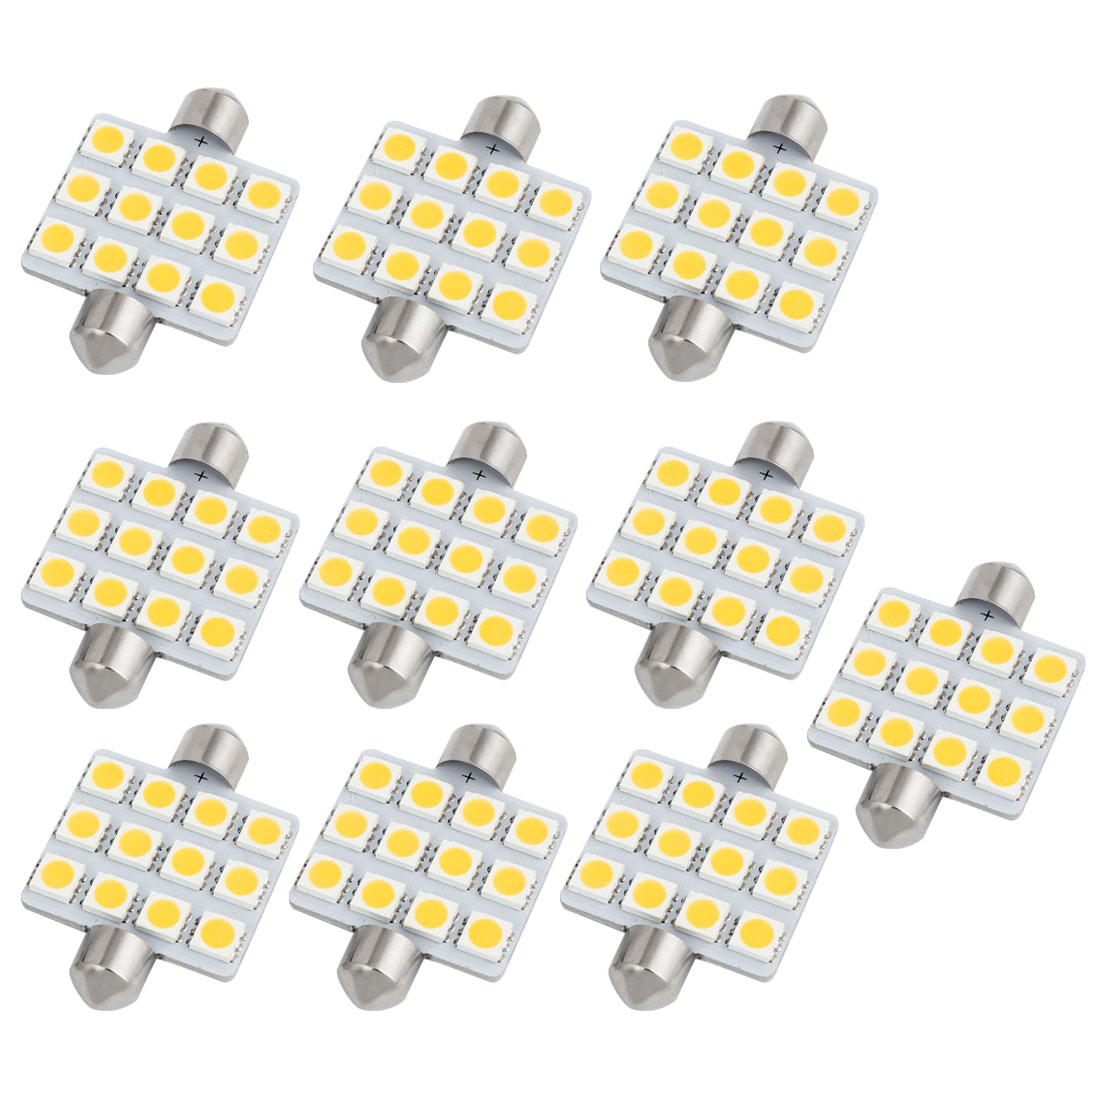 8pcs 41mm 5050 SMD 12-LED Festoon Dome Light Warm White 211 212 578 6429 Internal